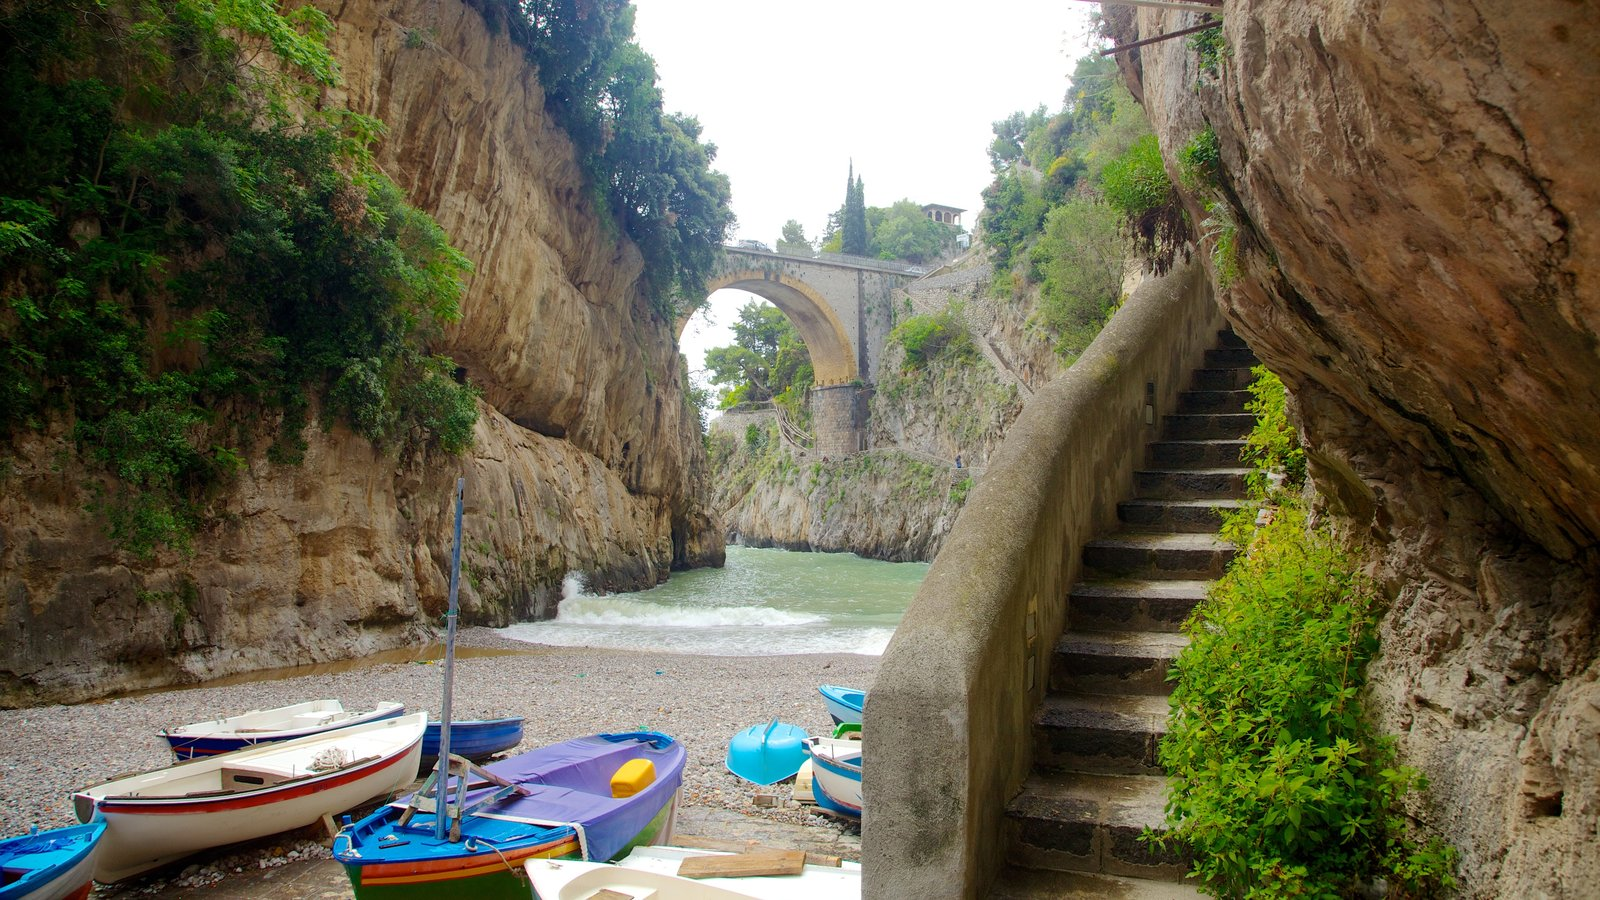 Fiordo di Furore featuring a pebble beach and boating